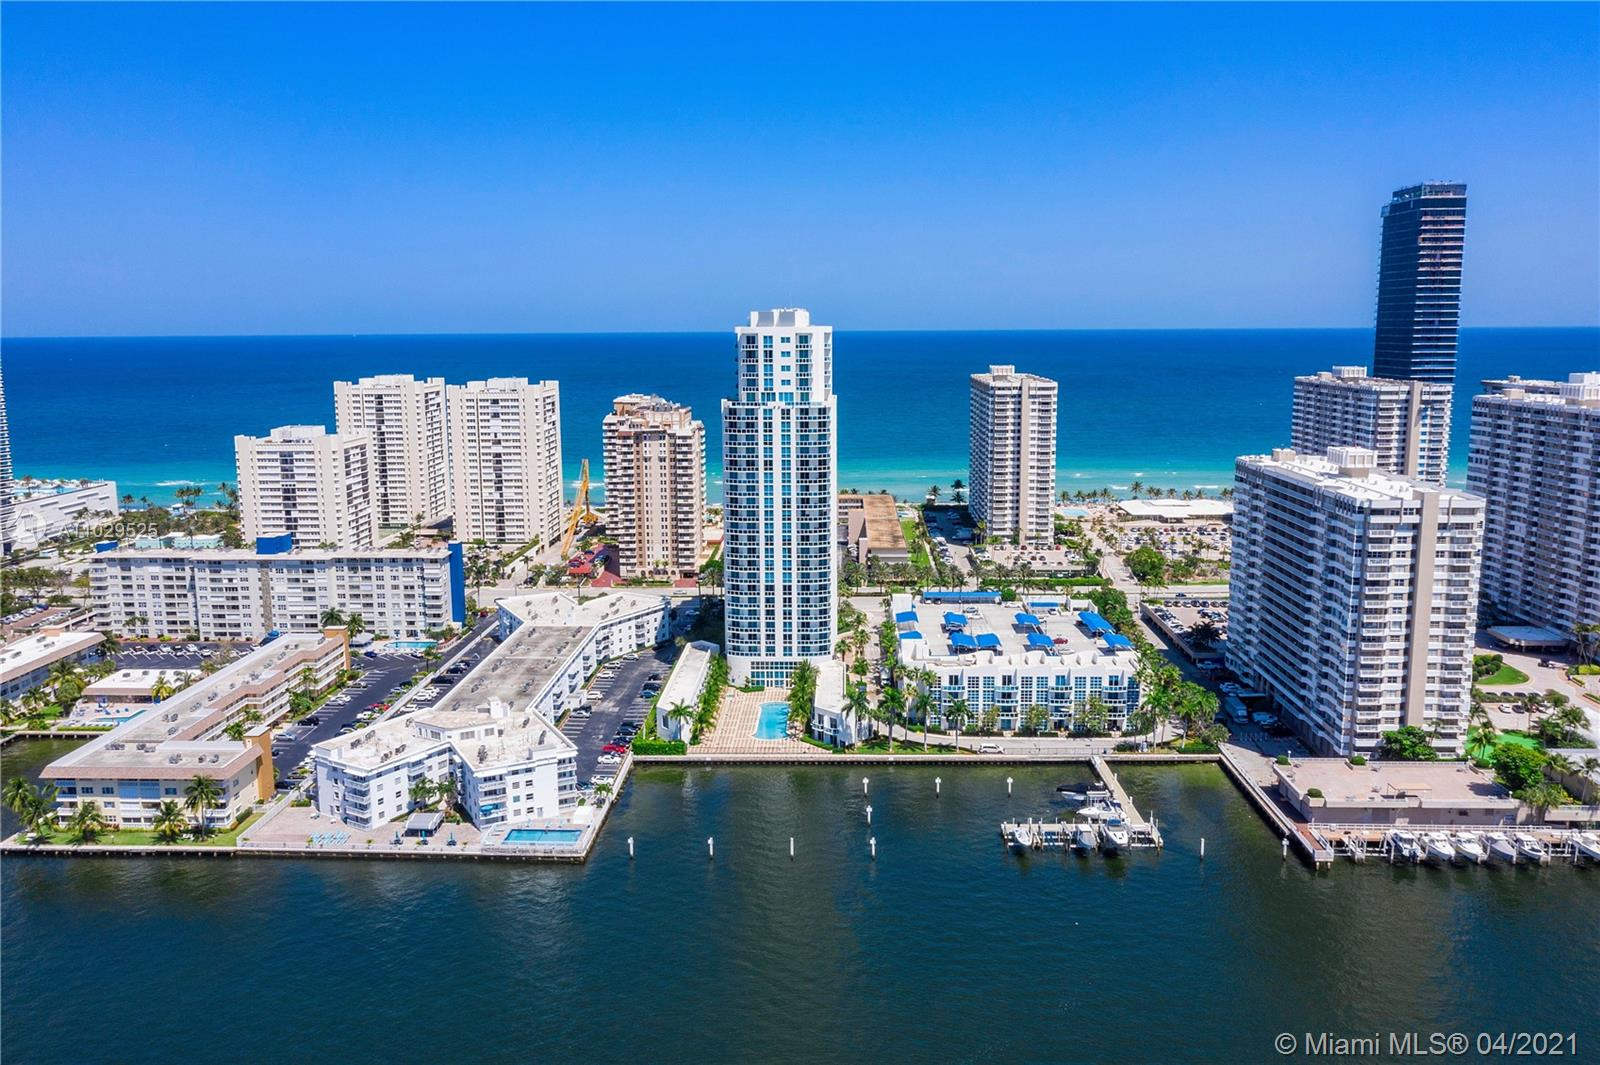 RARE ON THE MARKET!! LARGEST FLOOR PLAN!! 2100 SQ FEET UNDER AIR!!! SE EXPOSURE, BEST LINE IN THE BUILDING THIS UNIT ON THE 24TH FLOOR WITH  SUPER HIGH CEILINGS, AMAZING OCEAN VIEWS AND INTRACOASTAL VIEWS!! EASY TO SHOW!! GREAT BOUTIQUE BUILIDNG, CALL NOW!! UNIT RENTED UNTIL OCTOBER 2021 EXCELLENT TENANT PAYING $3500 A MONTH. CALL NOW DONT WAIT, MAKE YOUR OFFER!!